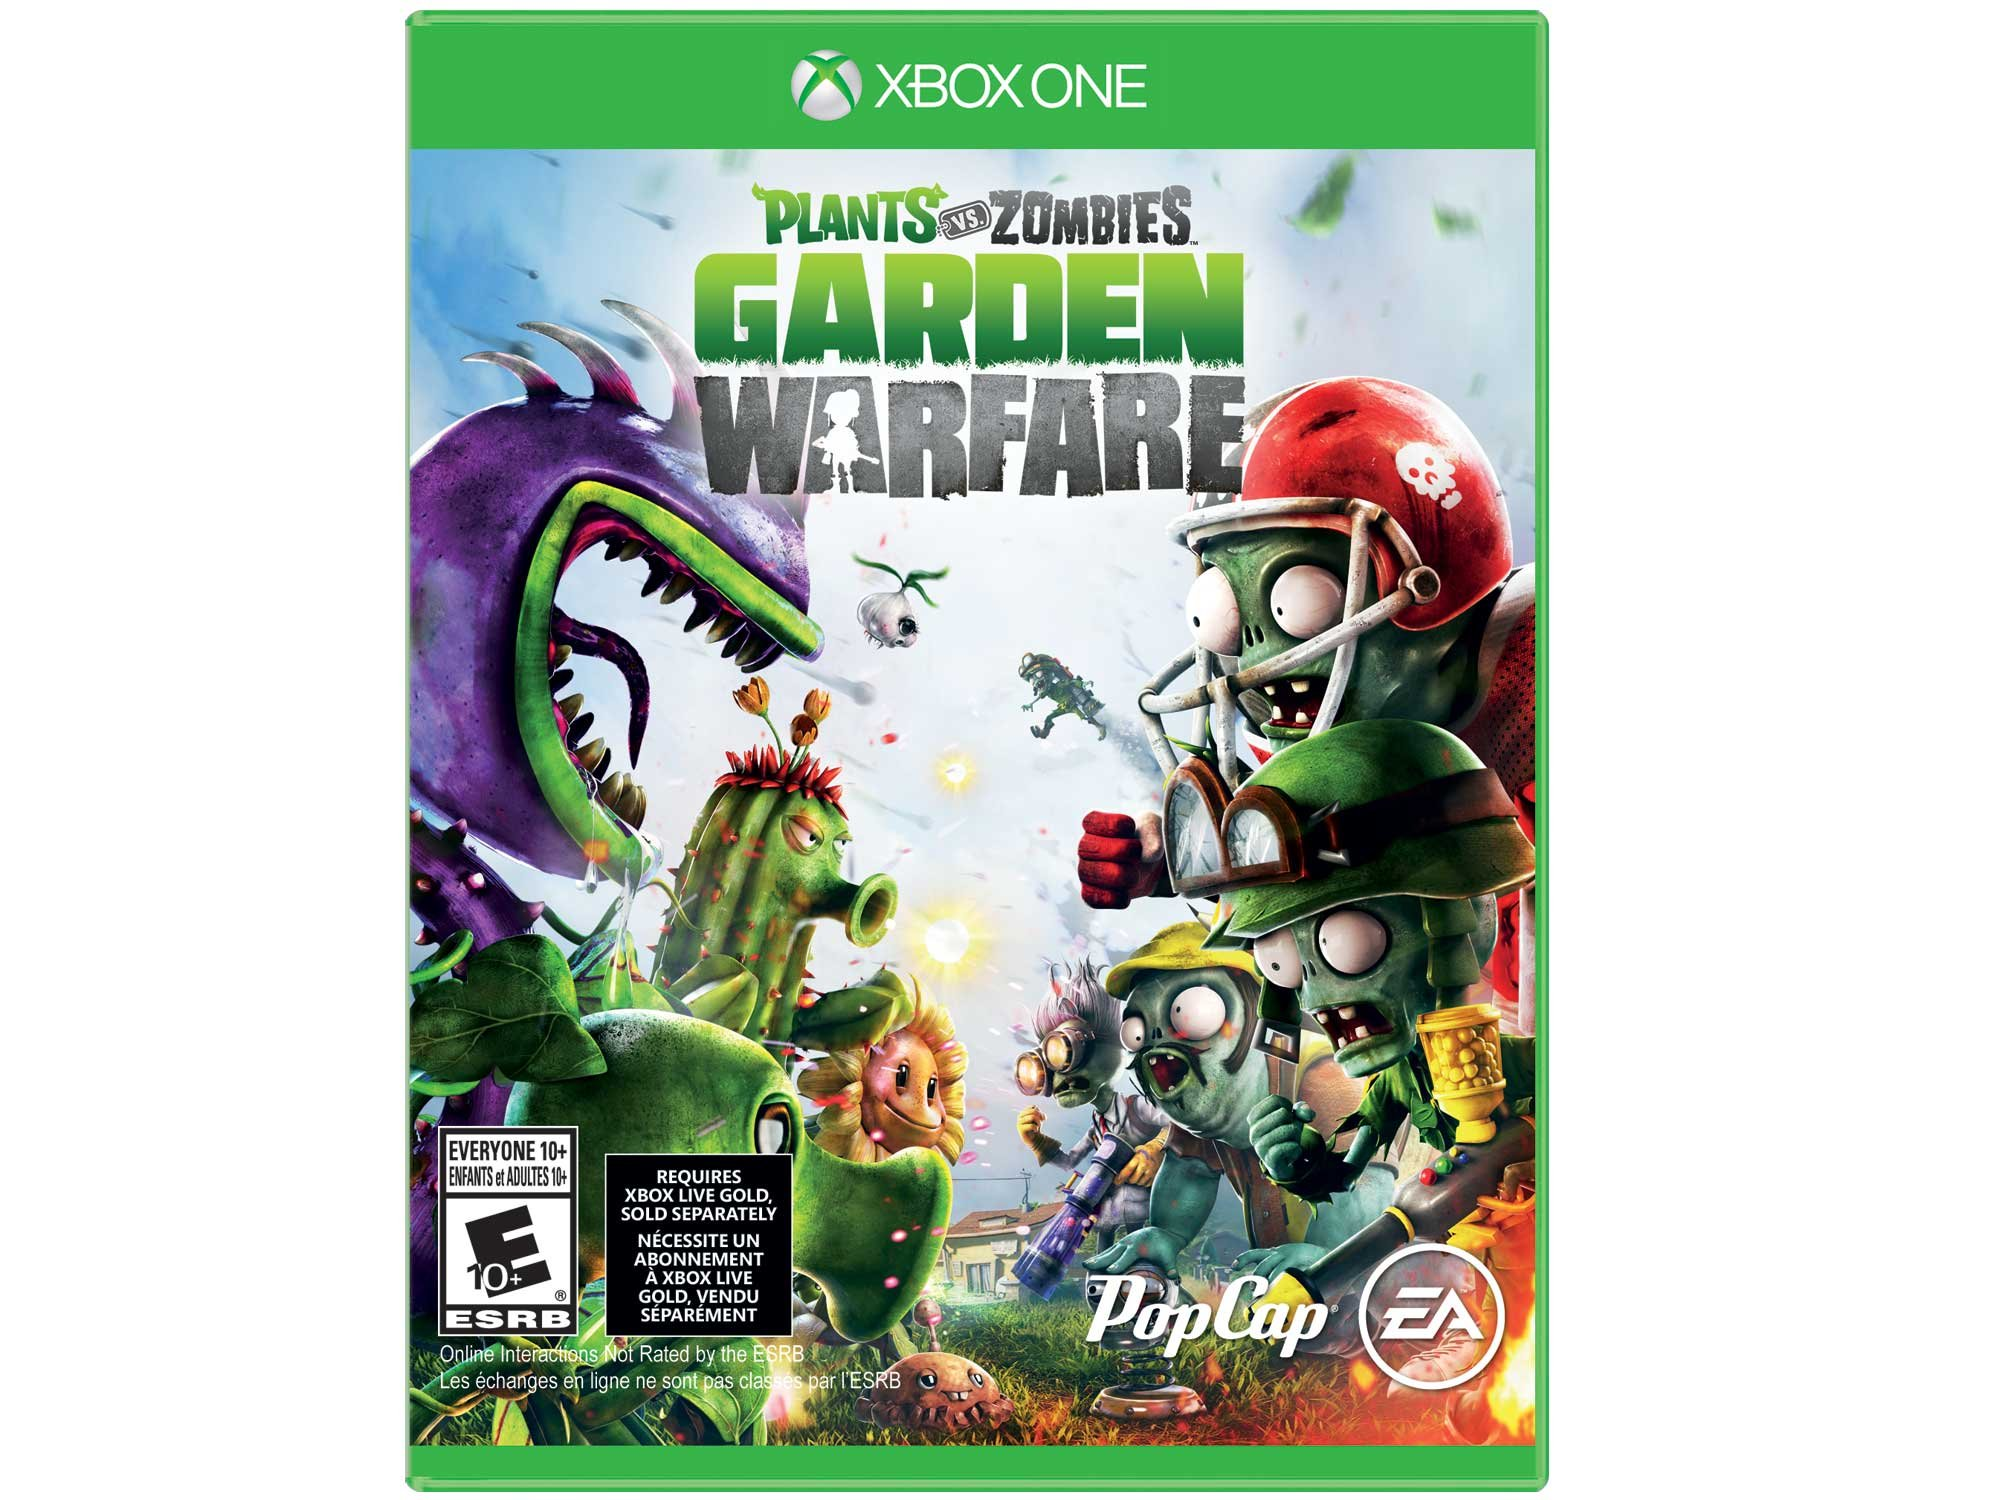 We accept all major credit cards amazon payments and - Plants vs zombies garden warfare xbox one ...